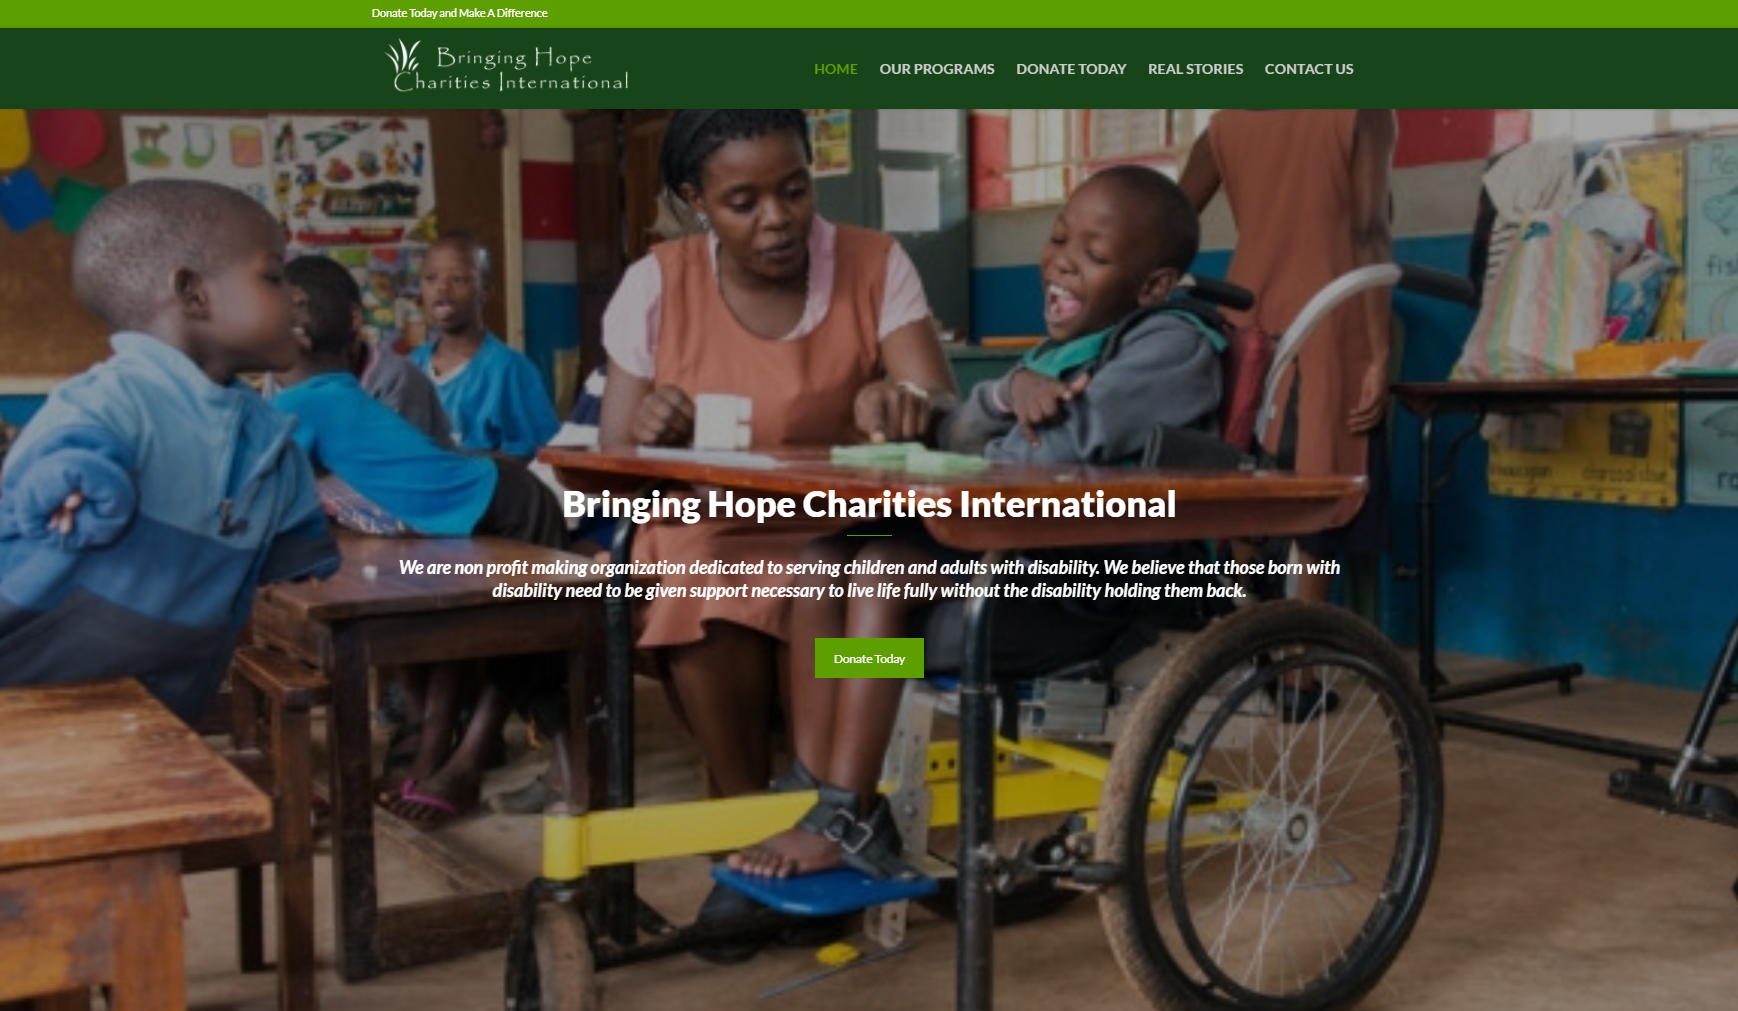 Bringing Hope Charitites International